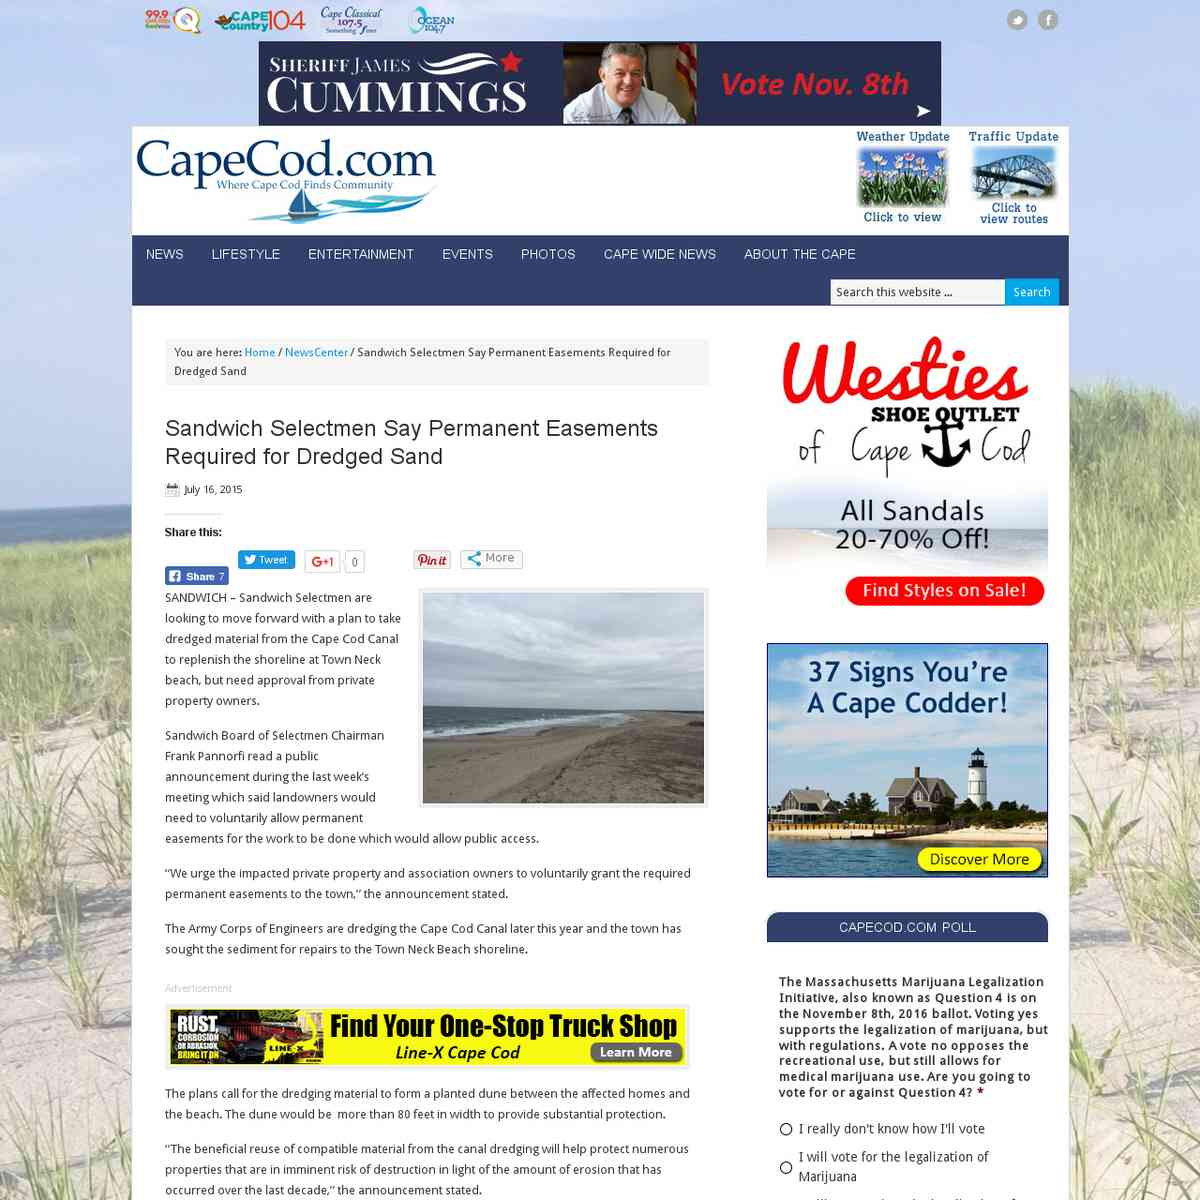 Sandwich Selectmen Say Permanent Easements Required for Dredged Sand